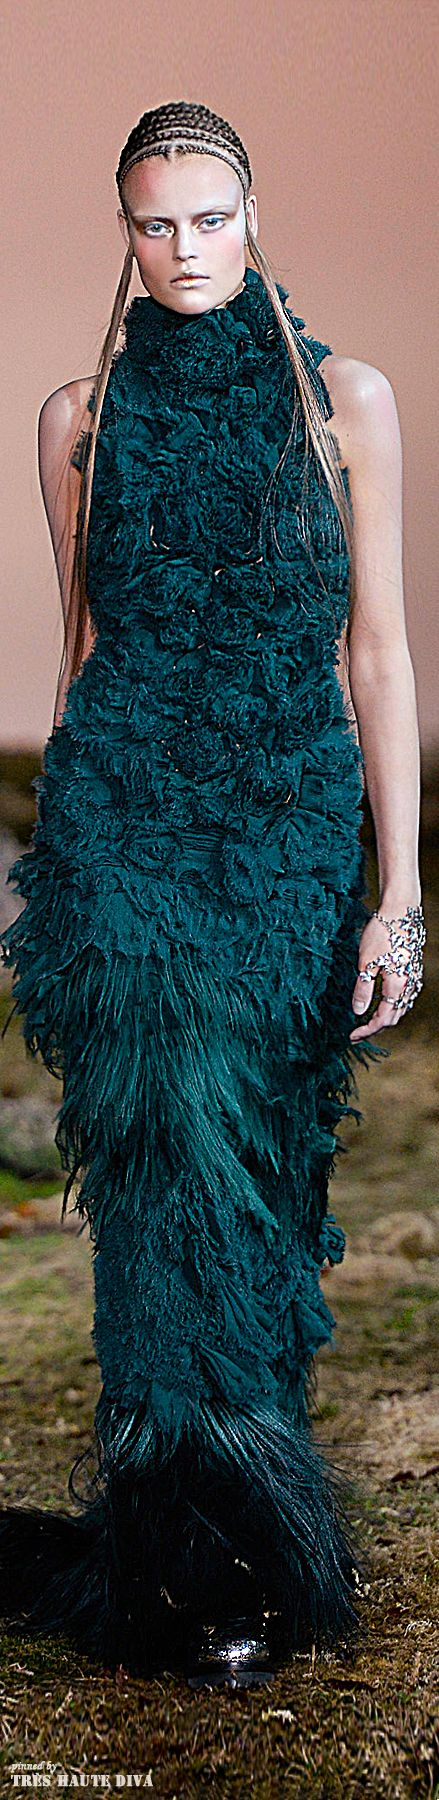 17 best images about haute couture alexander mcqueen on for Mac alexander mcqueen